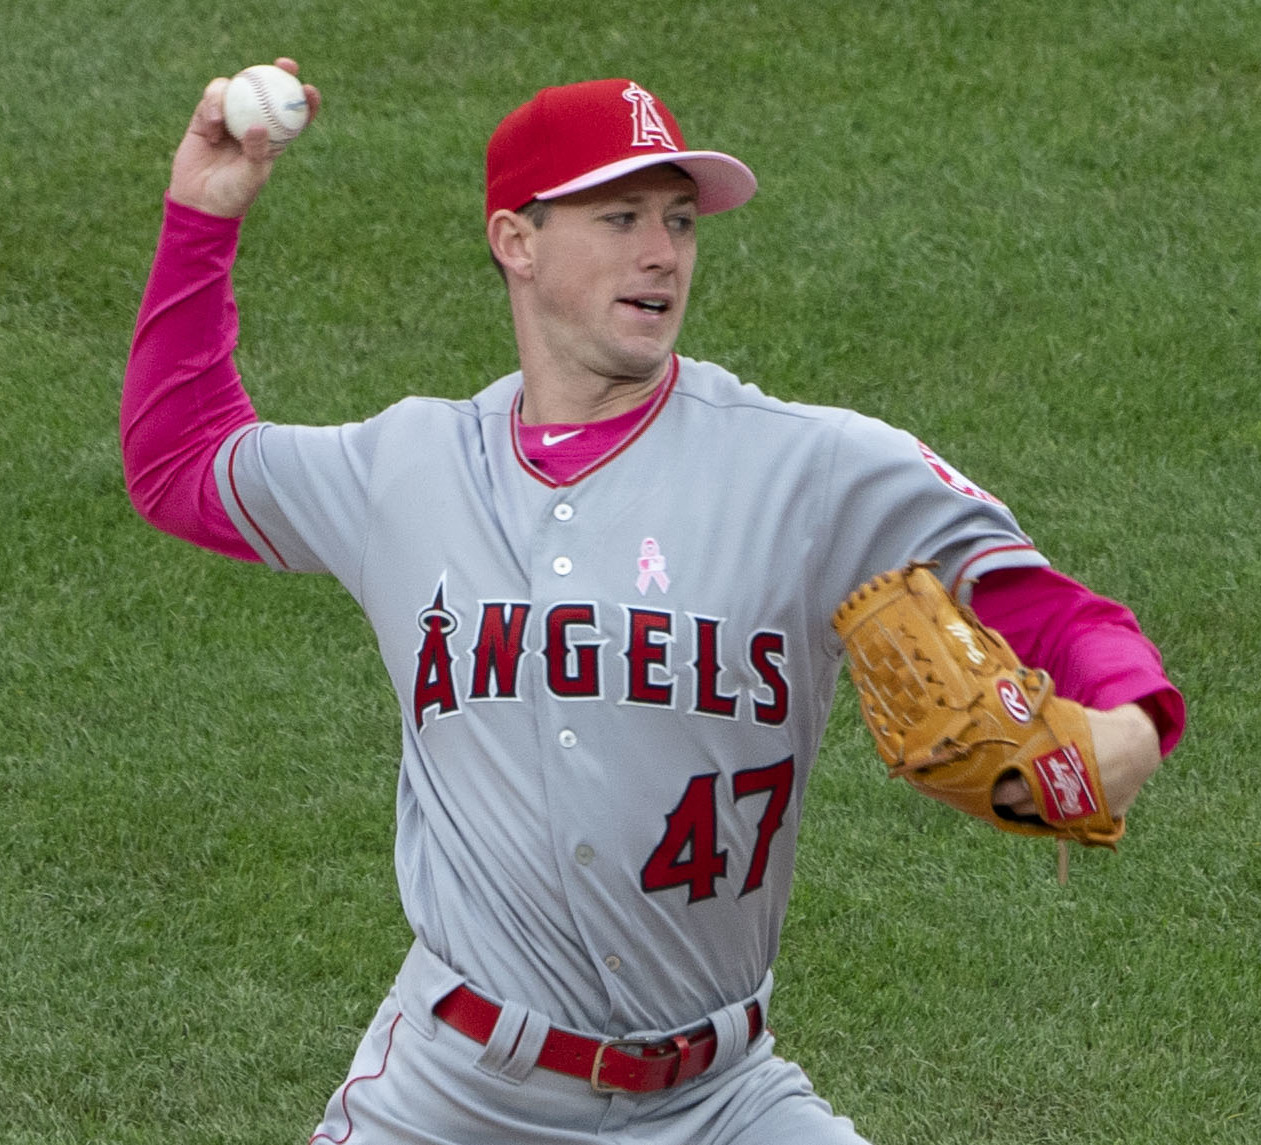 August 18, 2019 -- Led by starting pitcher Griffin Canning, the Angels defeated the White Sox at home, 9 to 2. The Angels pitching was helped by Brian Goodwin on offence.